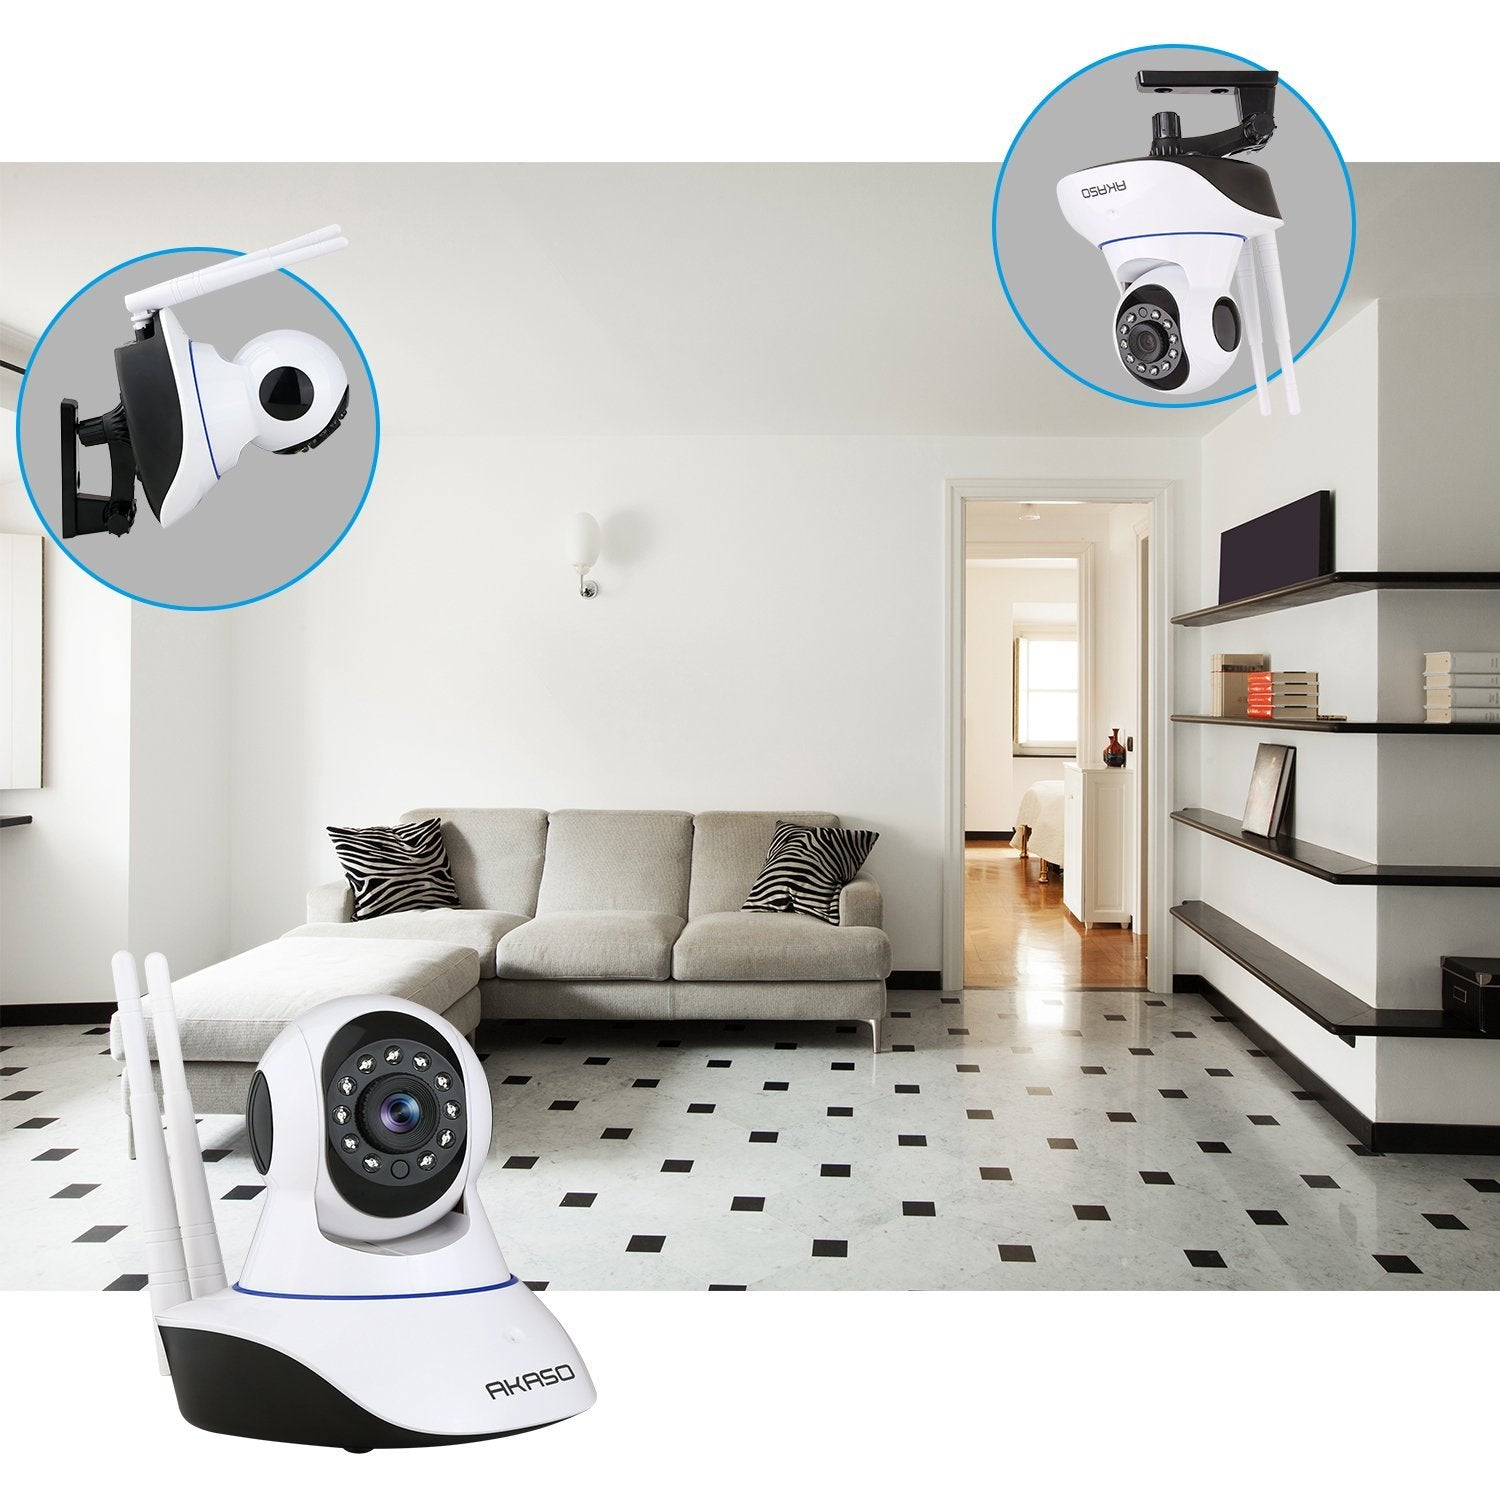 cameras cctv vga security los and commercial interior residential angeles installation hd